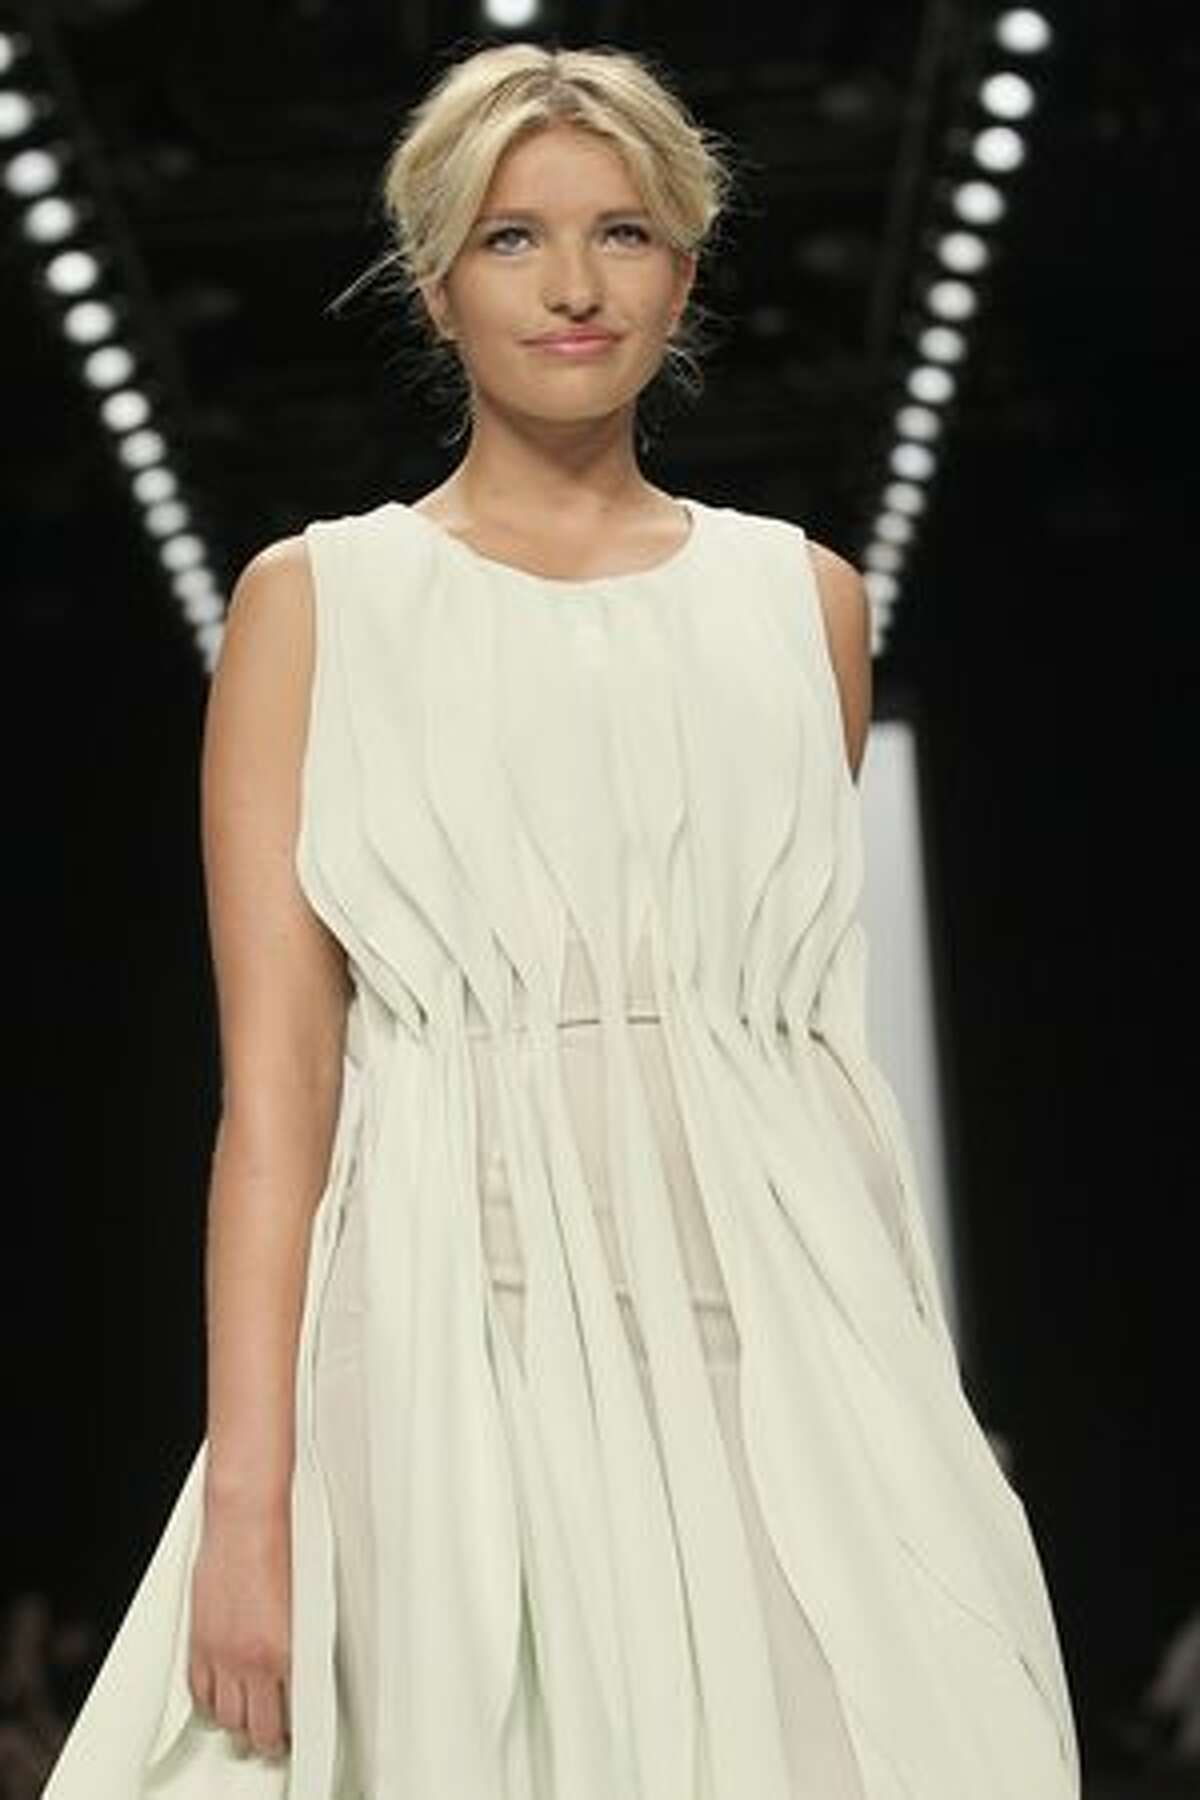 Sarina Nowak walks the runway at the 30Paarhaende Show during the Mercedes Benz Fashion Week Spring/Summer 2011 at Bebelplatz on July 10, 2010 in Berlin, Germany.